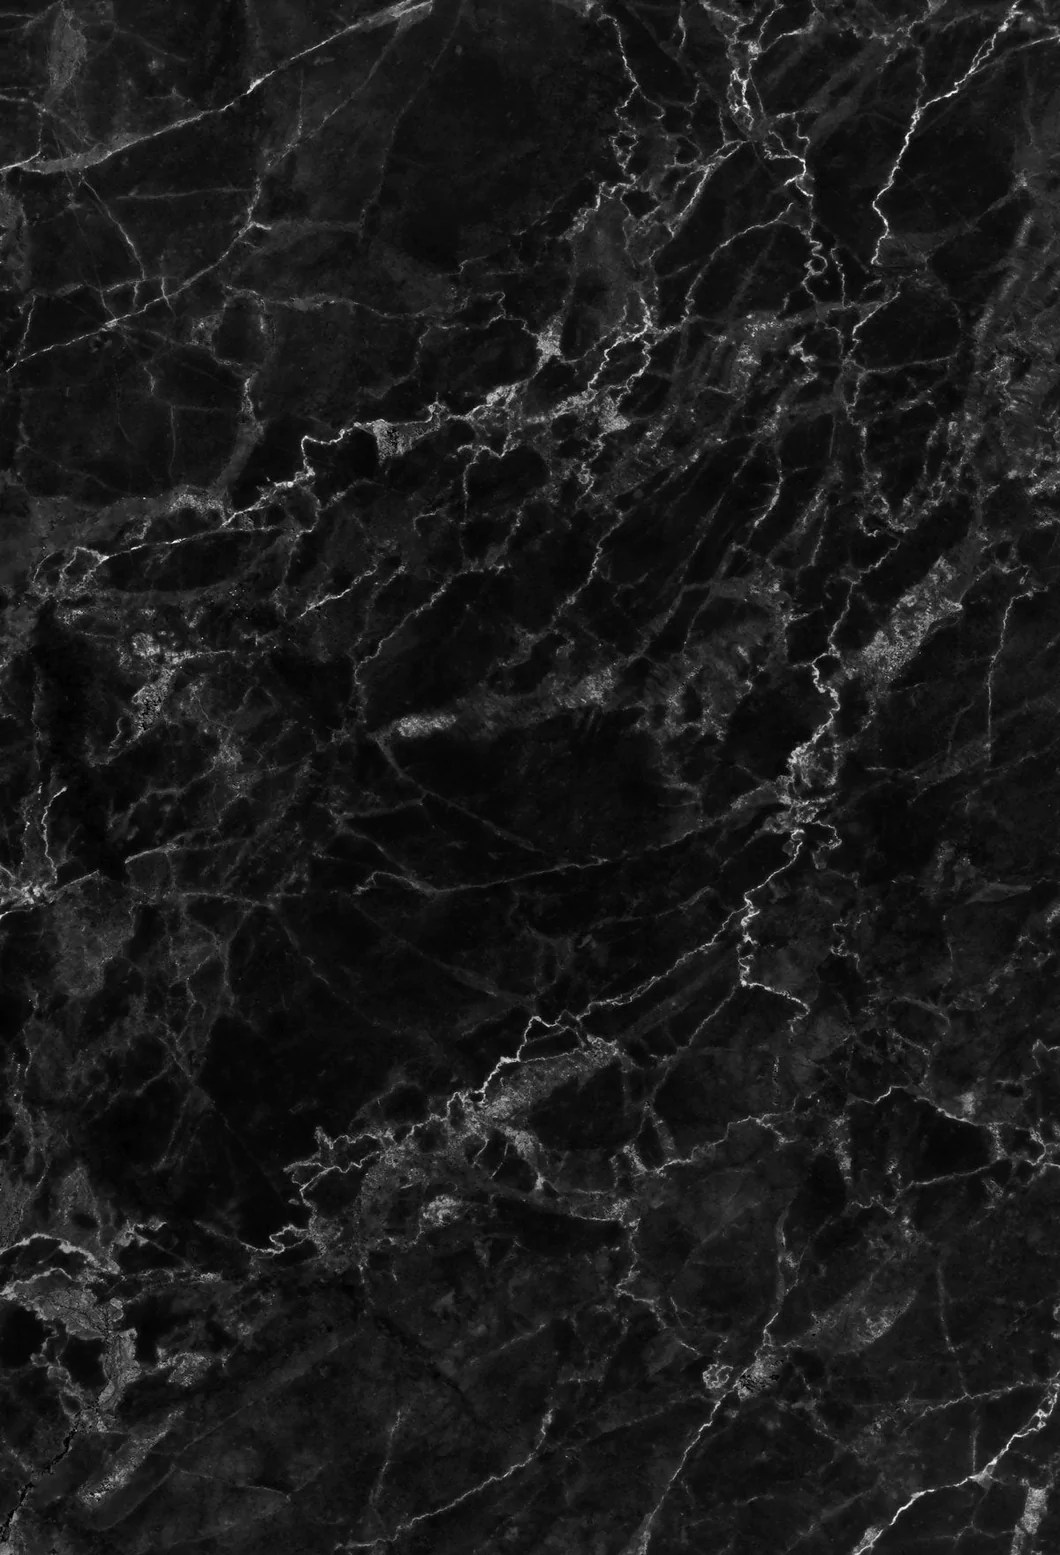 Teppich 3mx3m Buy Discount Kate Dark Black Marble Stone Texture Backdrop